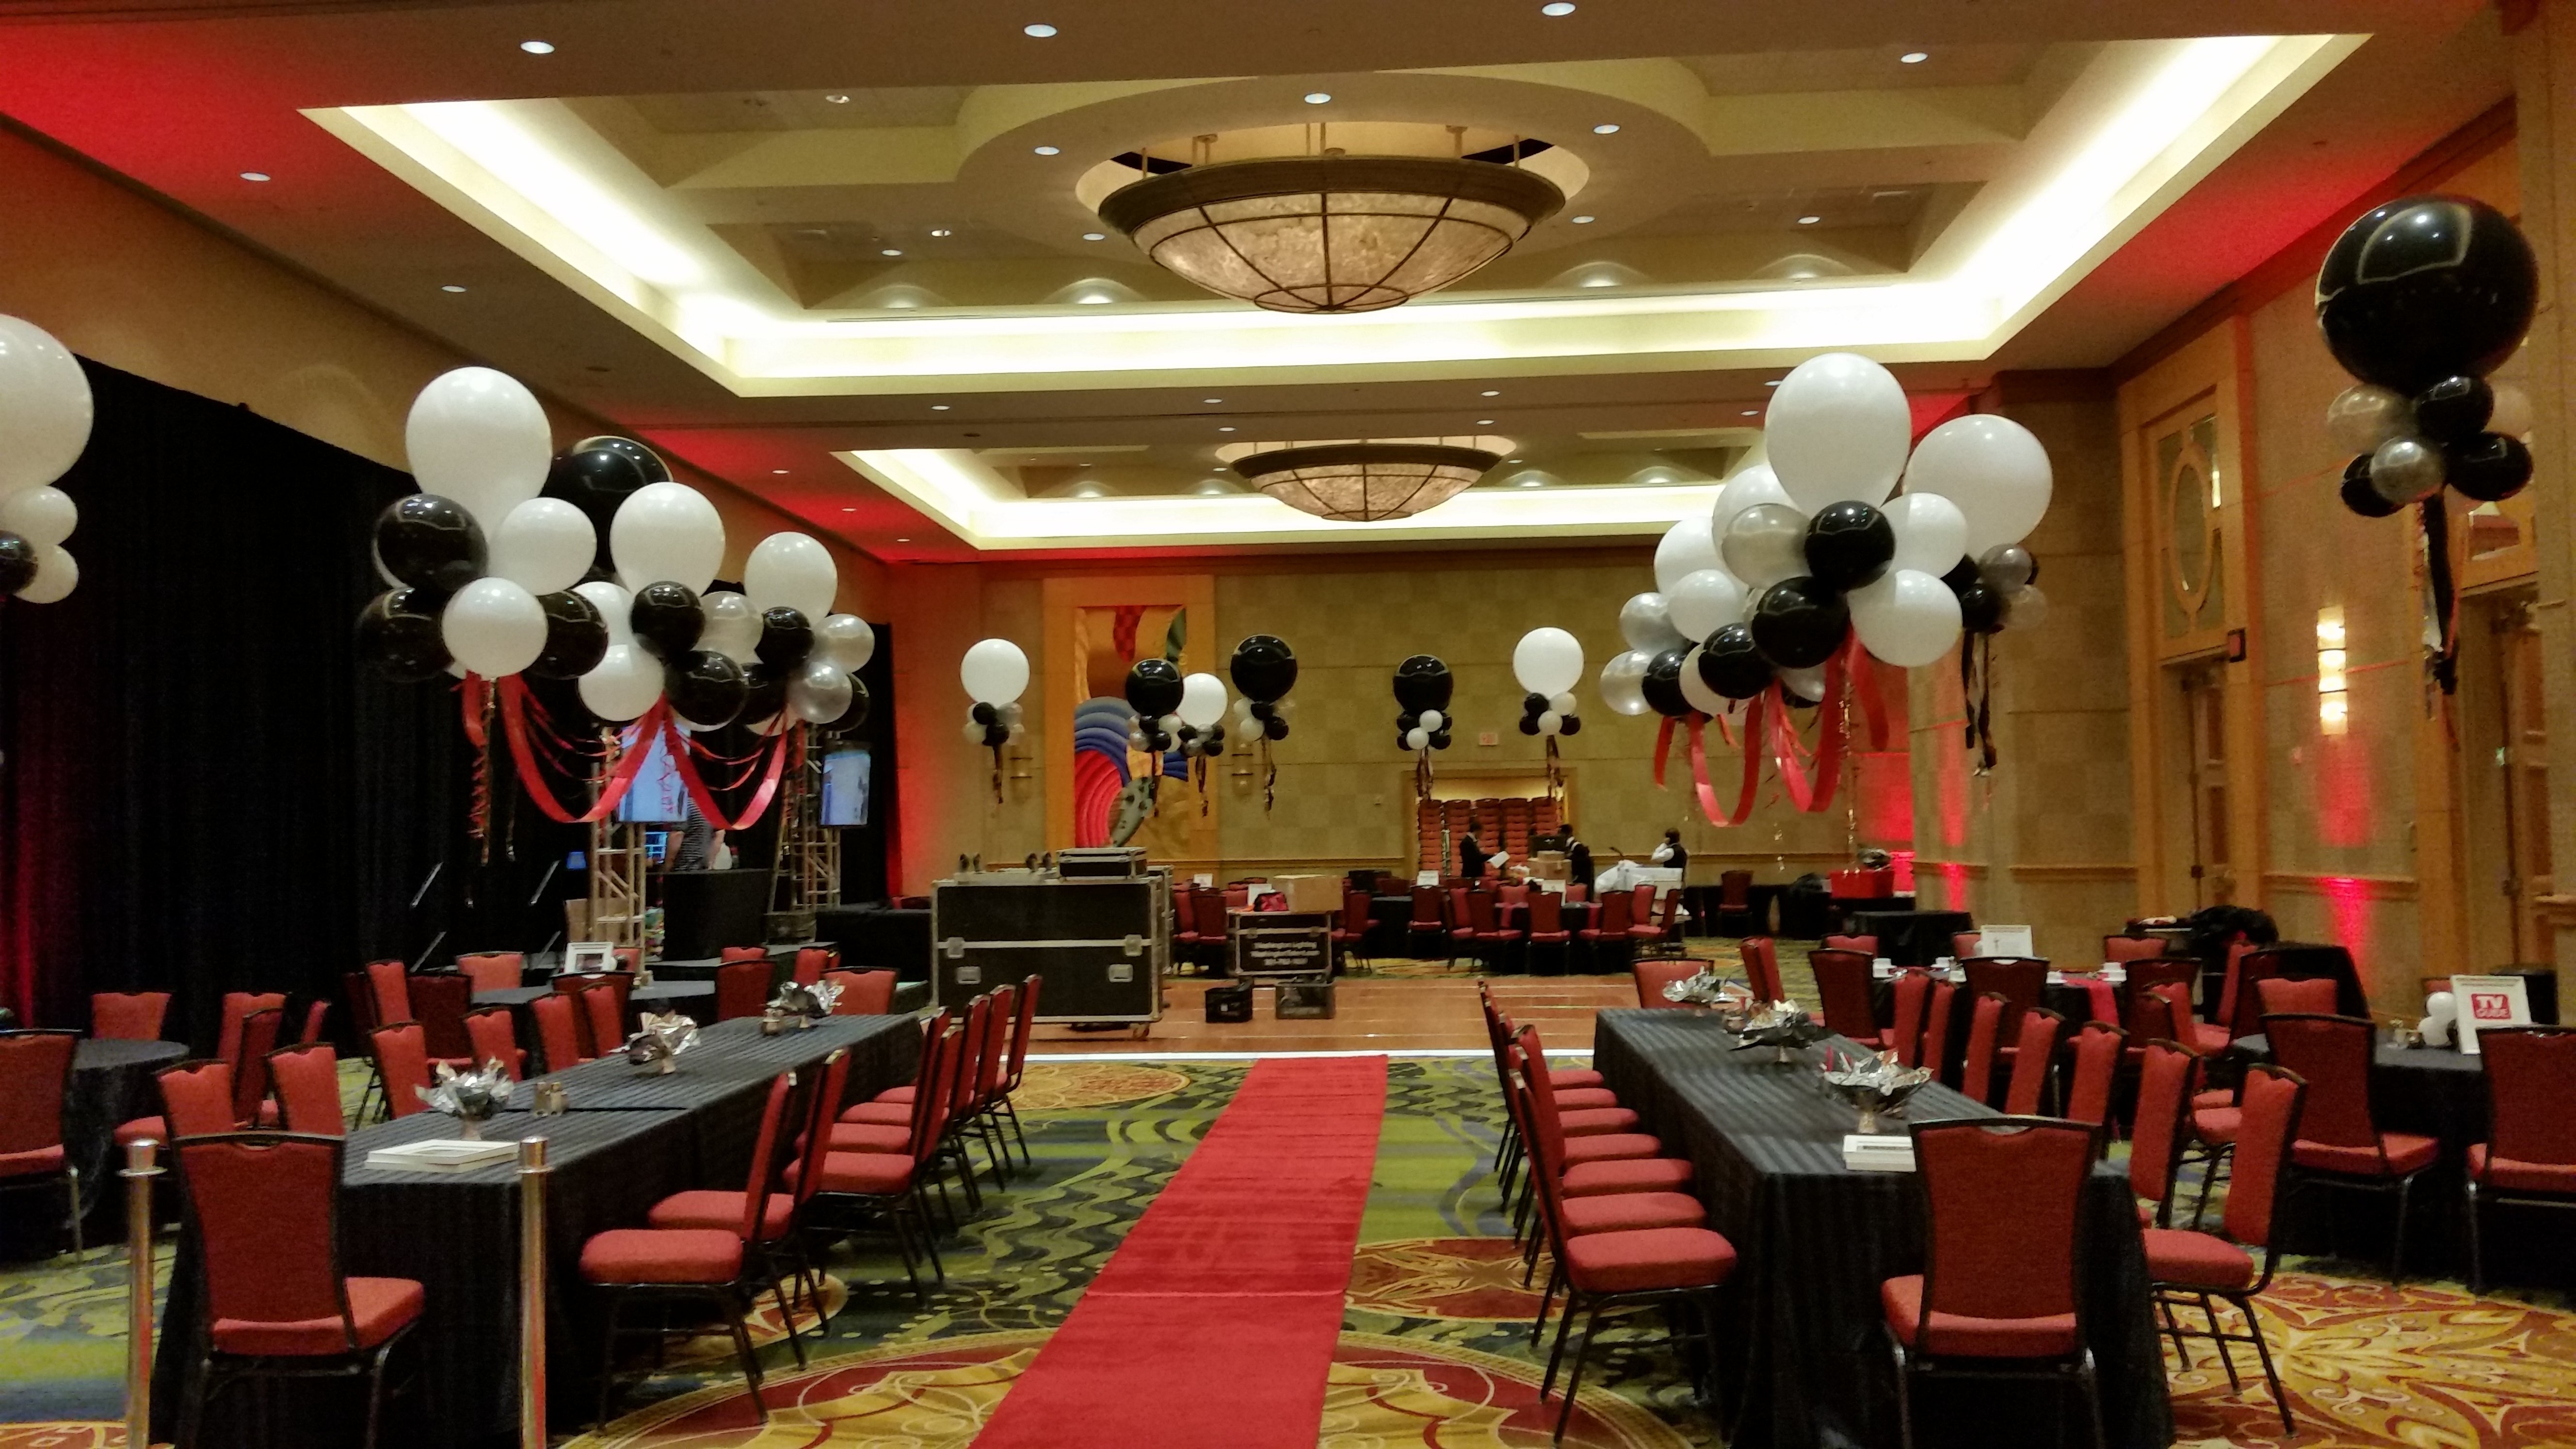 10 Famous Red Carpet Theme Party Ideas hollywood red carpet themed party ideas e280a2 carpet 2021